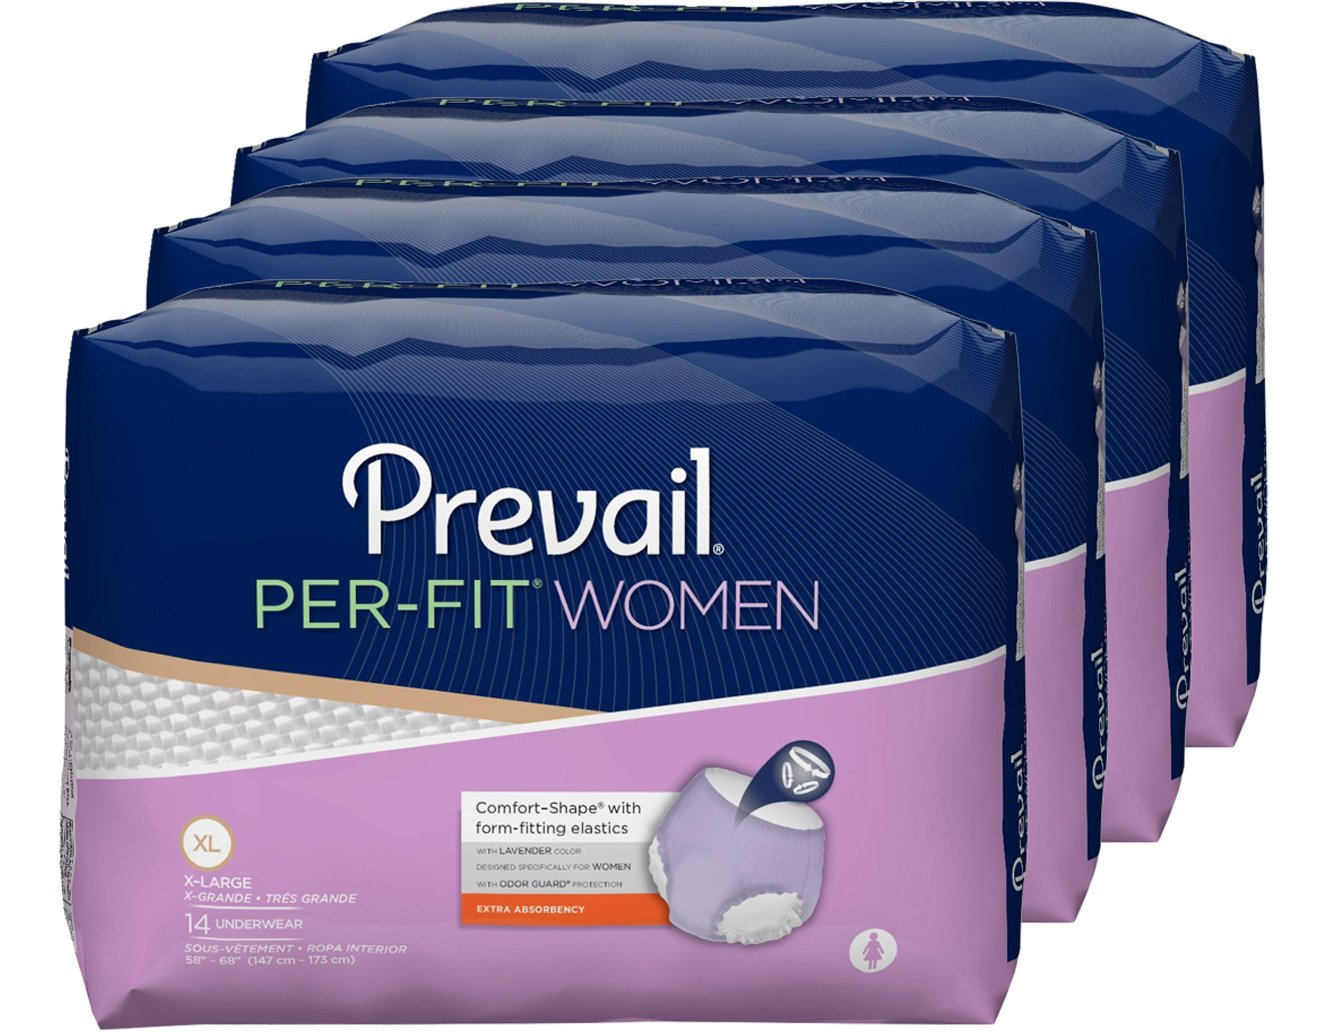 Amazon.com: Prevail Per-Fit Extra Absorbency Incontinence Underwear for Women, Extra Large, 56-Count: Health & Personal Care